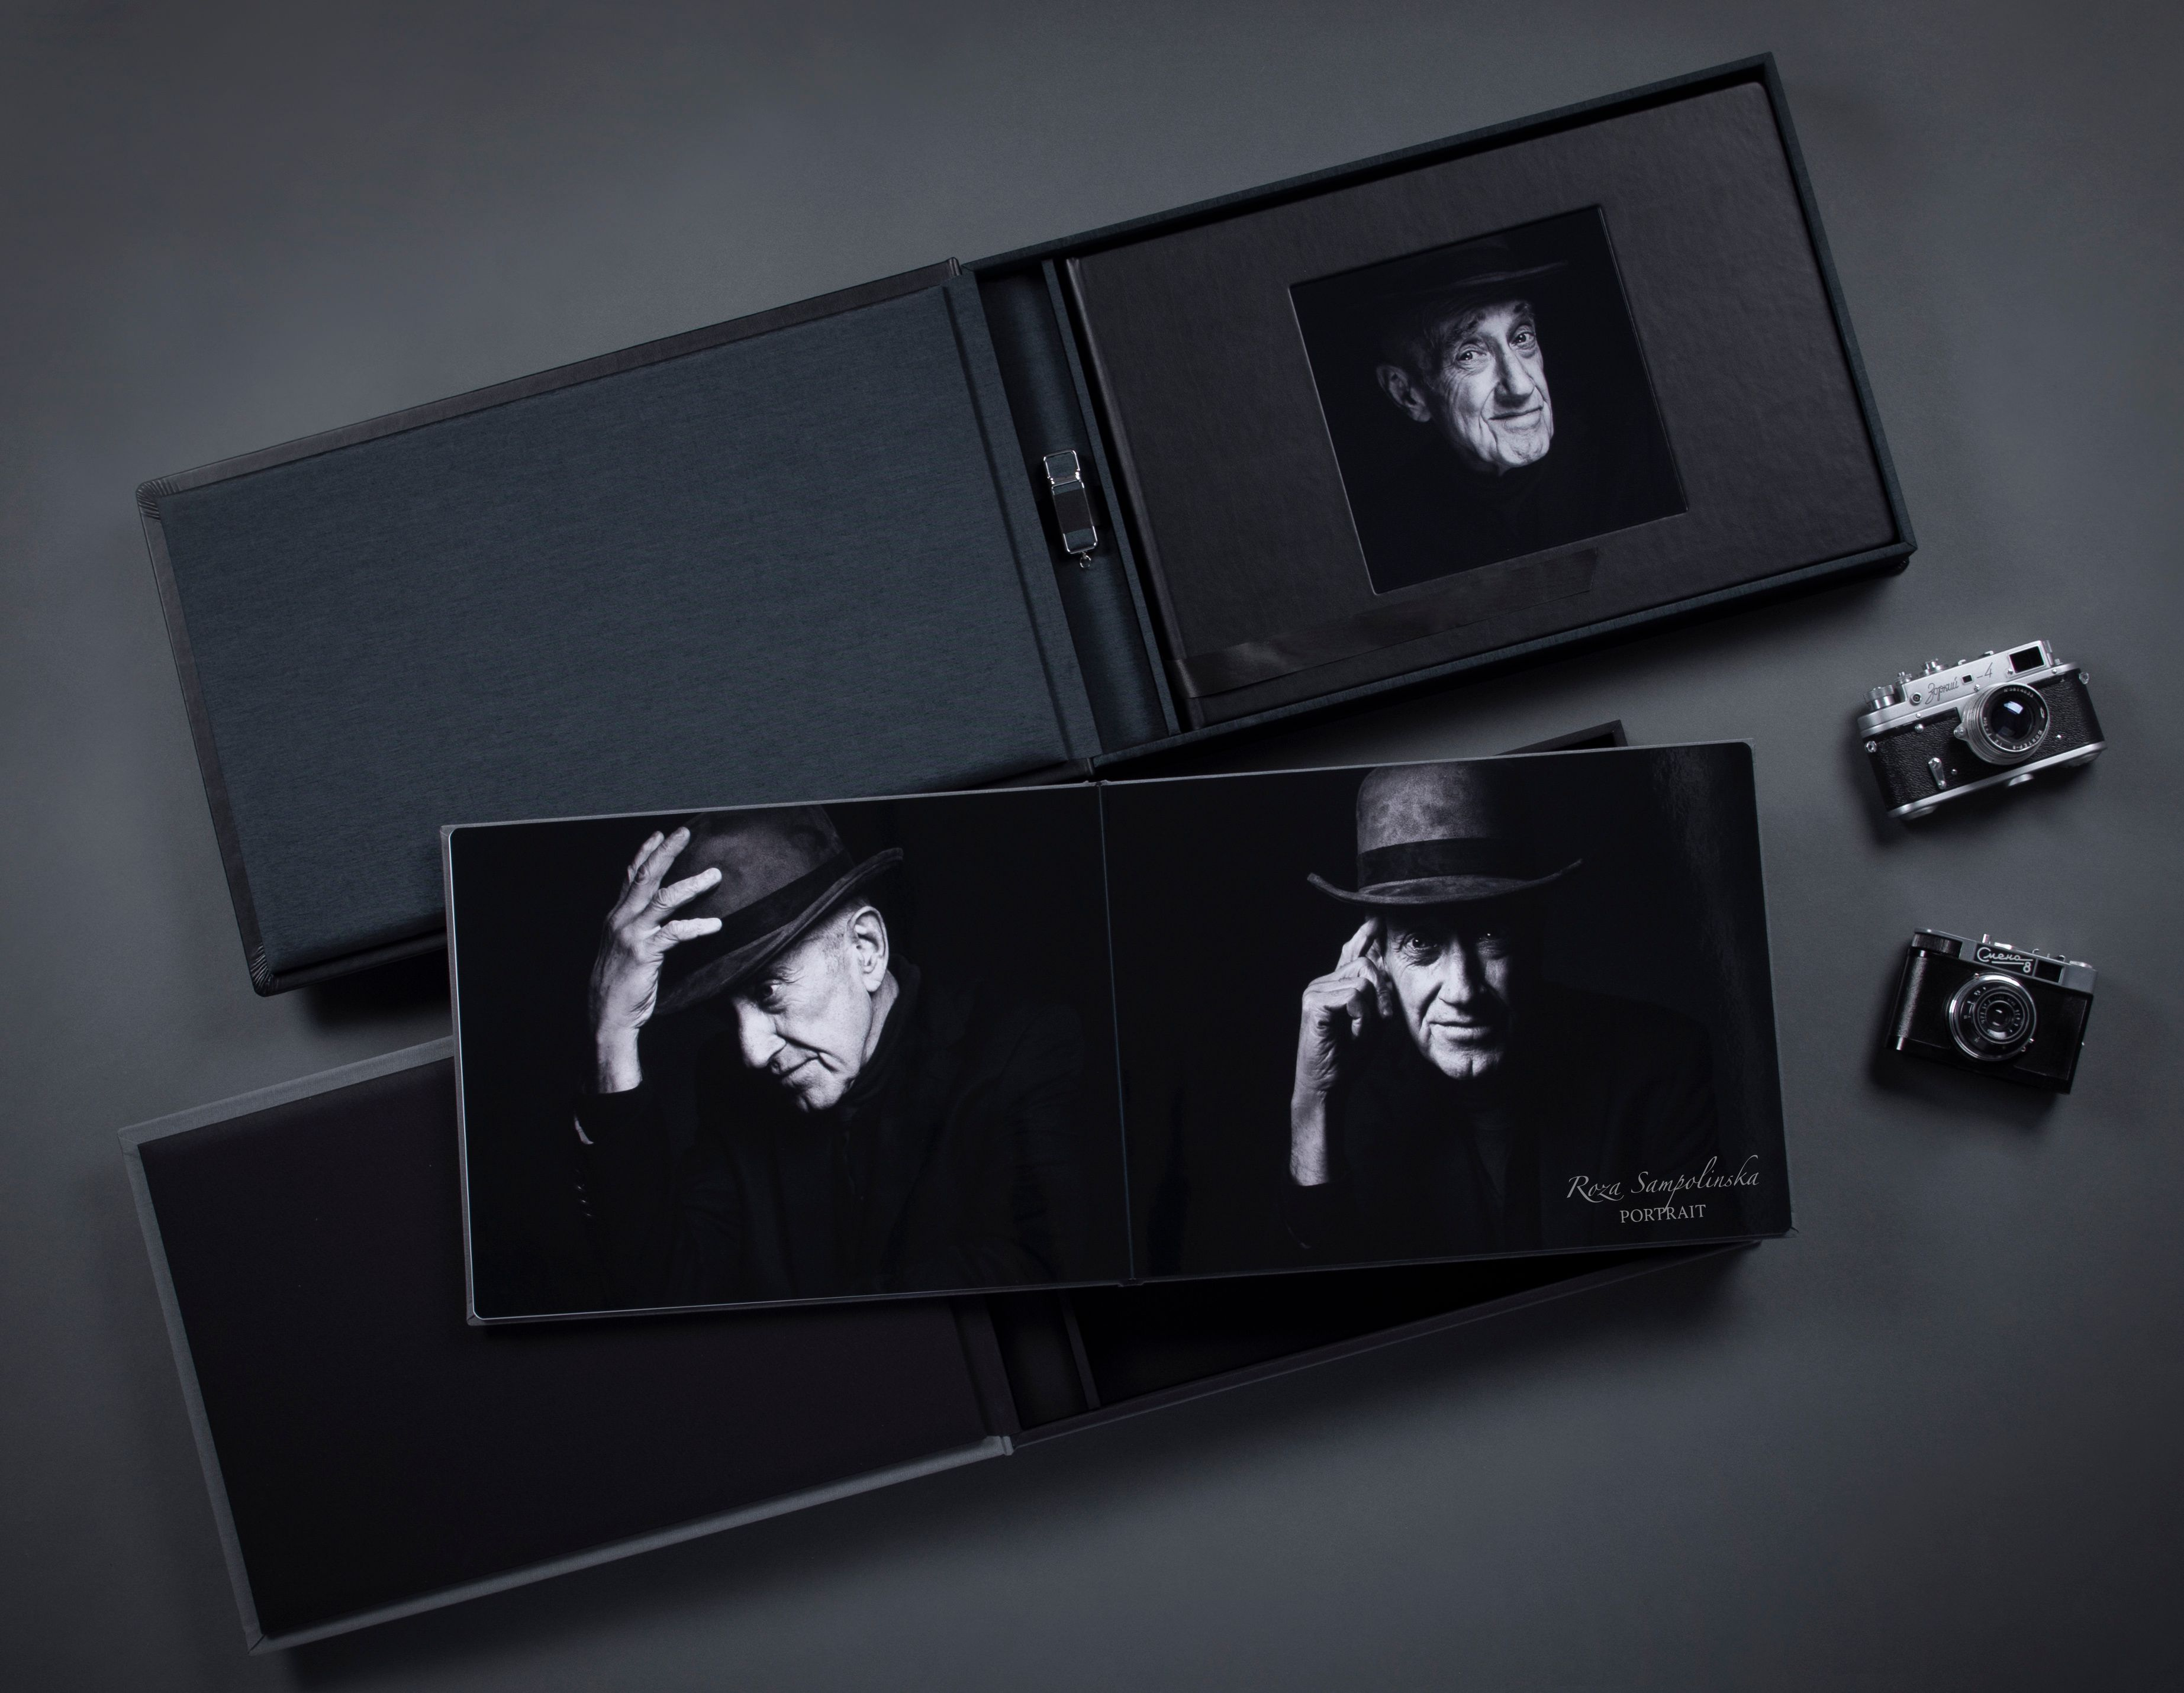 USB and Print in Complete Album Sets